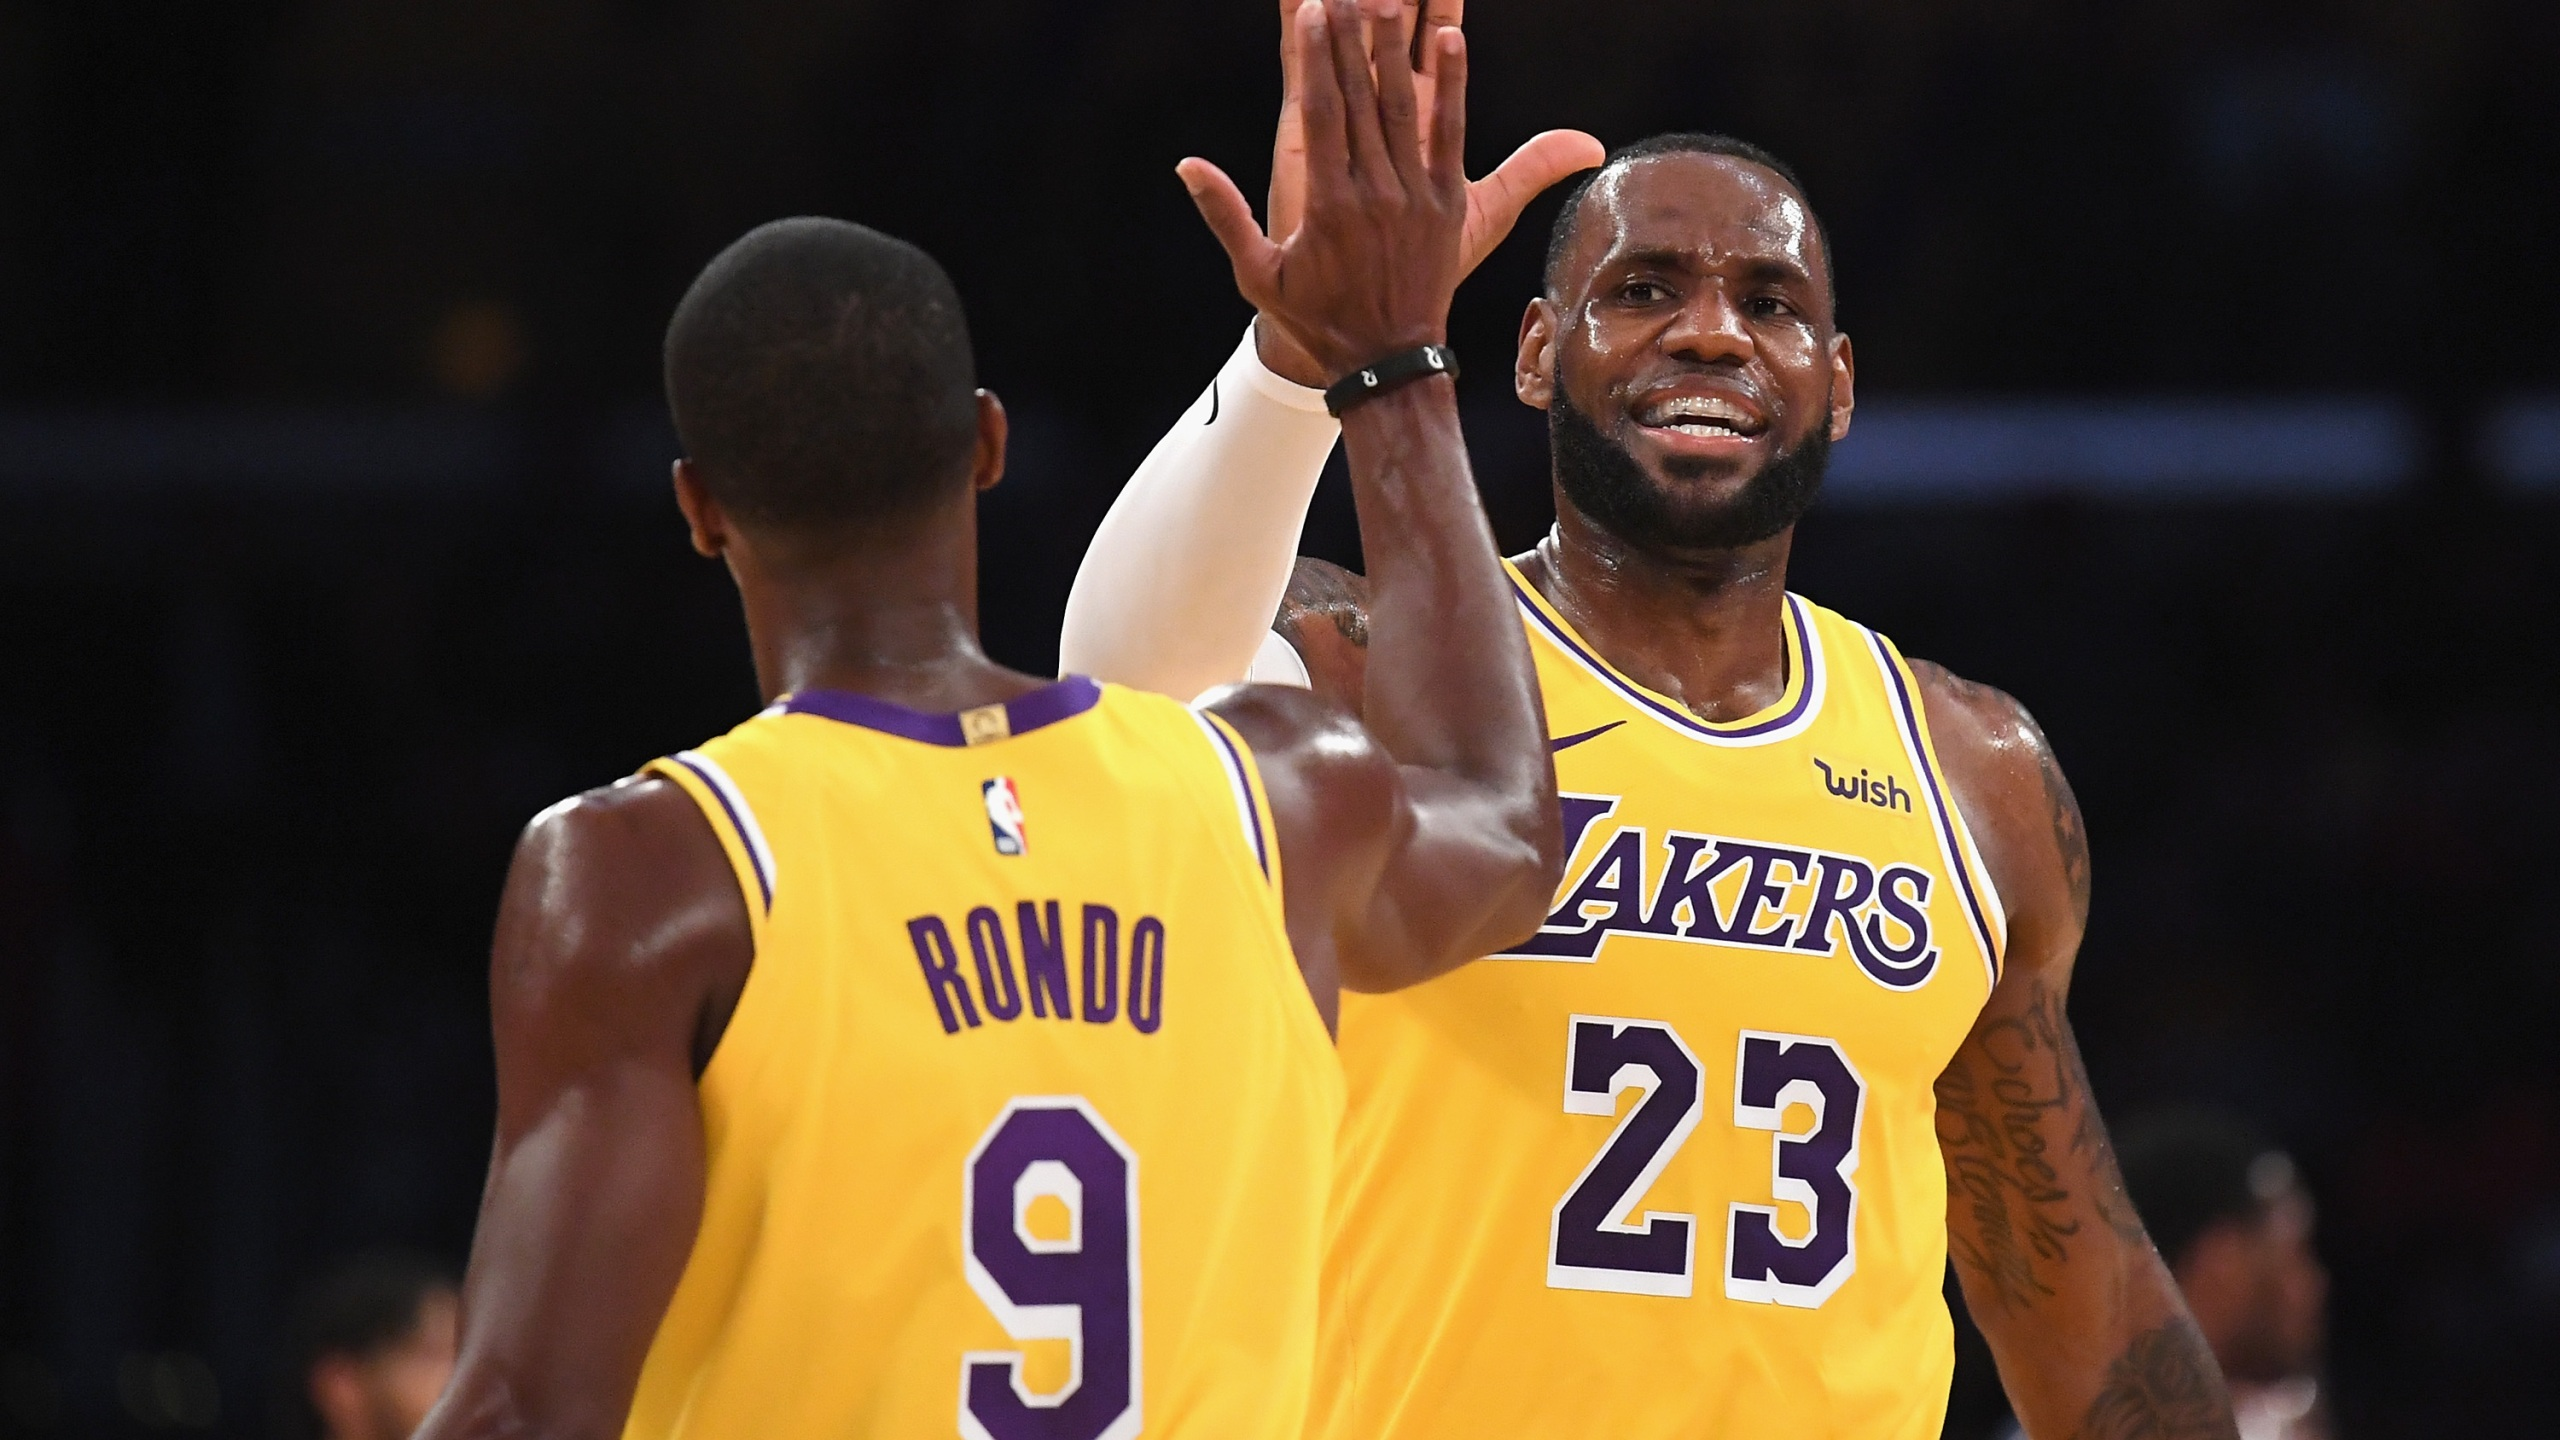 LeBron James of the Los Angeles Lakers high fives Rajon Rondo during a preseason game against the Denver Nuggets at Staples Center on Oct. 2, 2018. (Harry How / Getty Images)